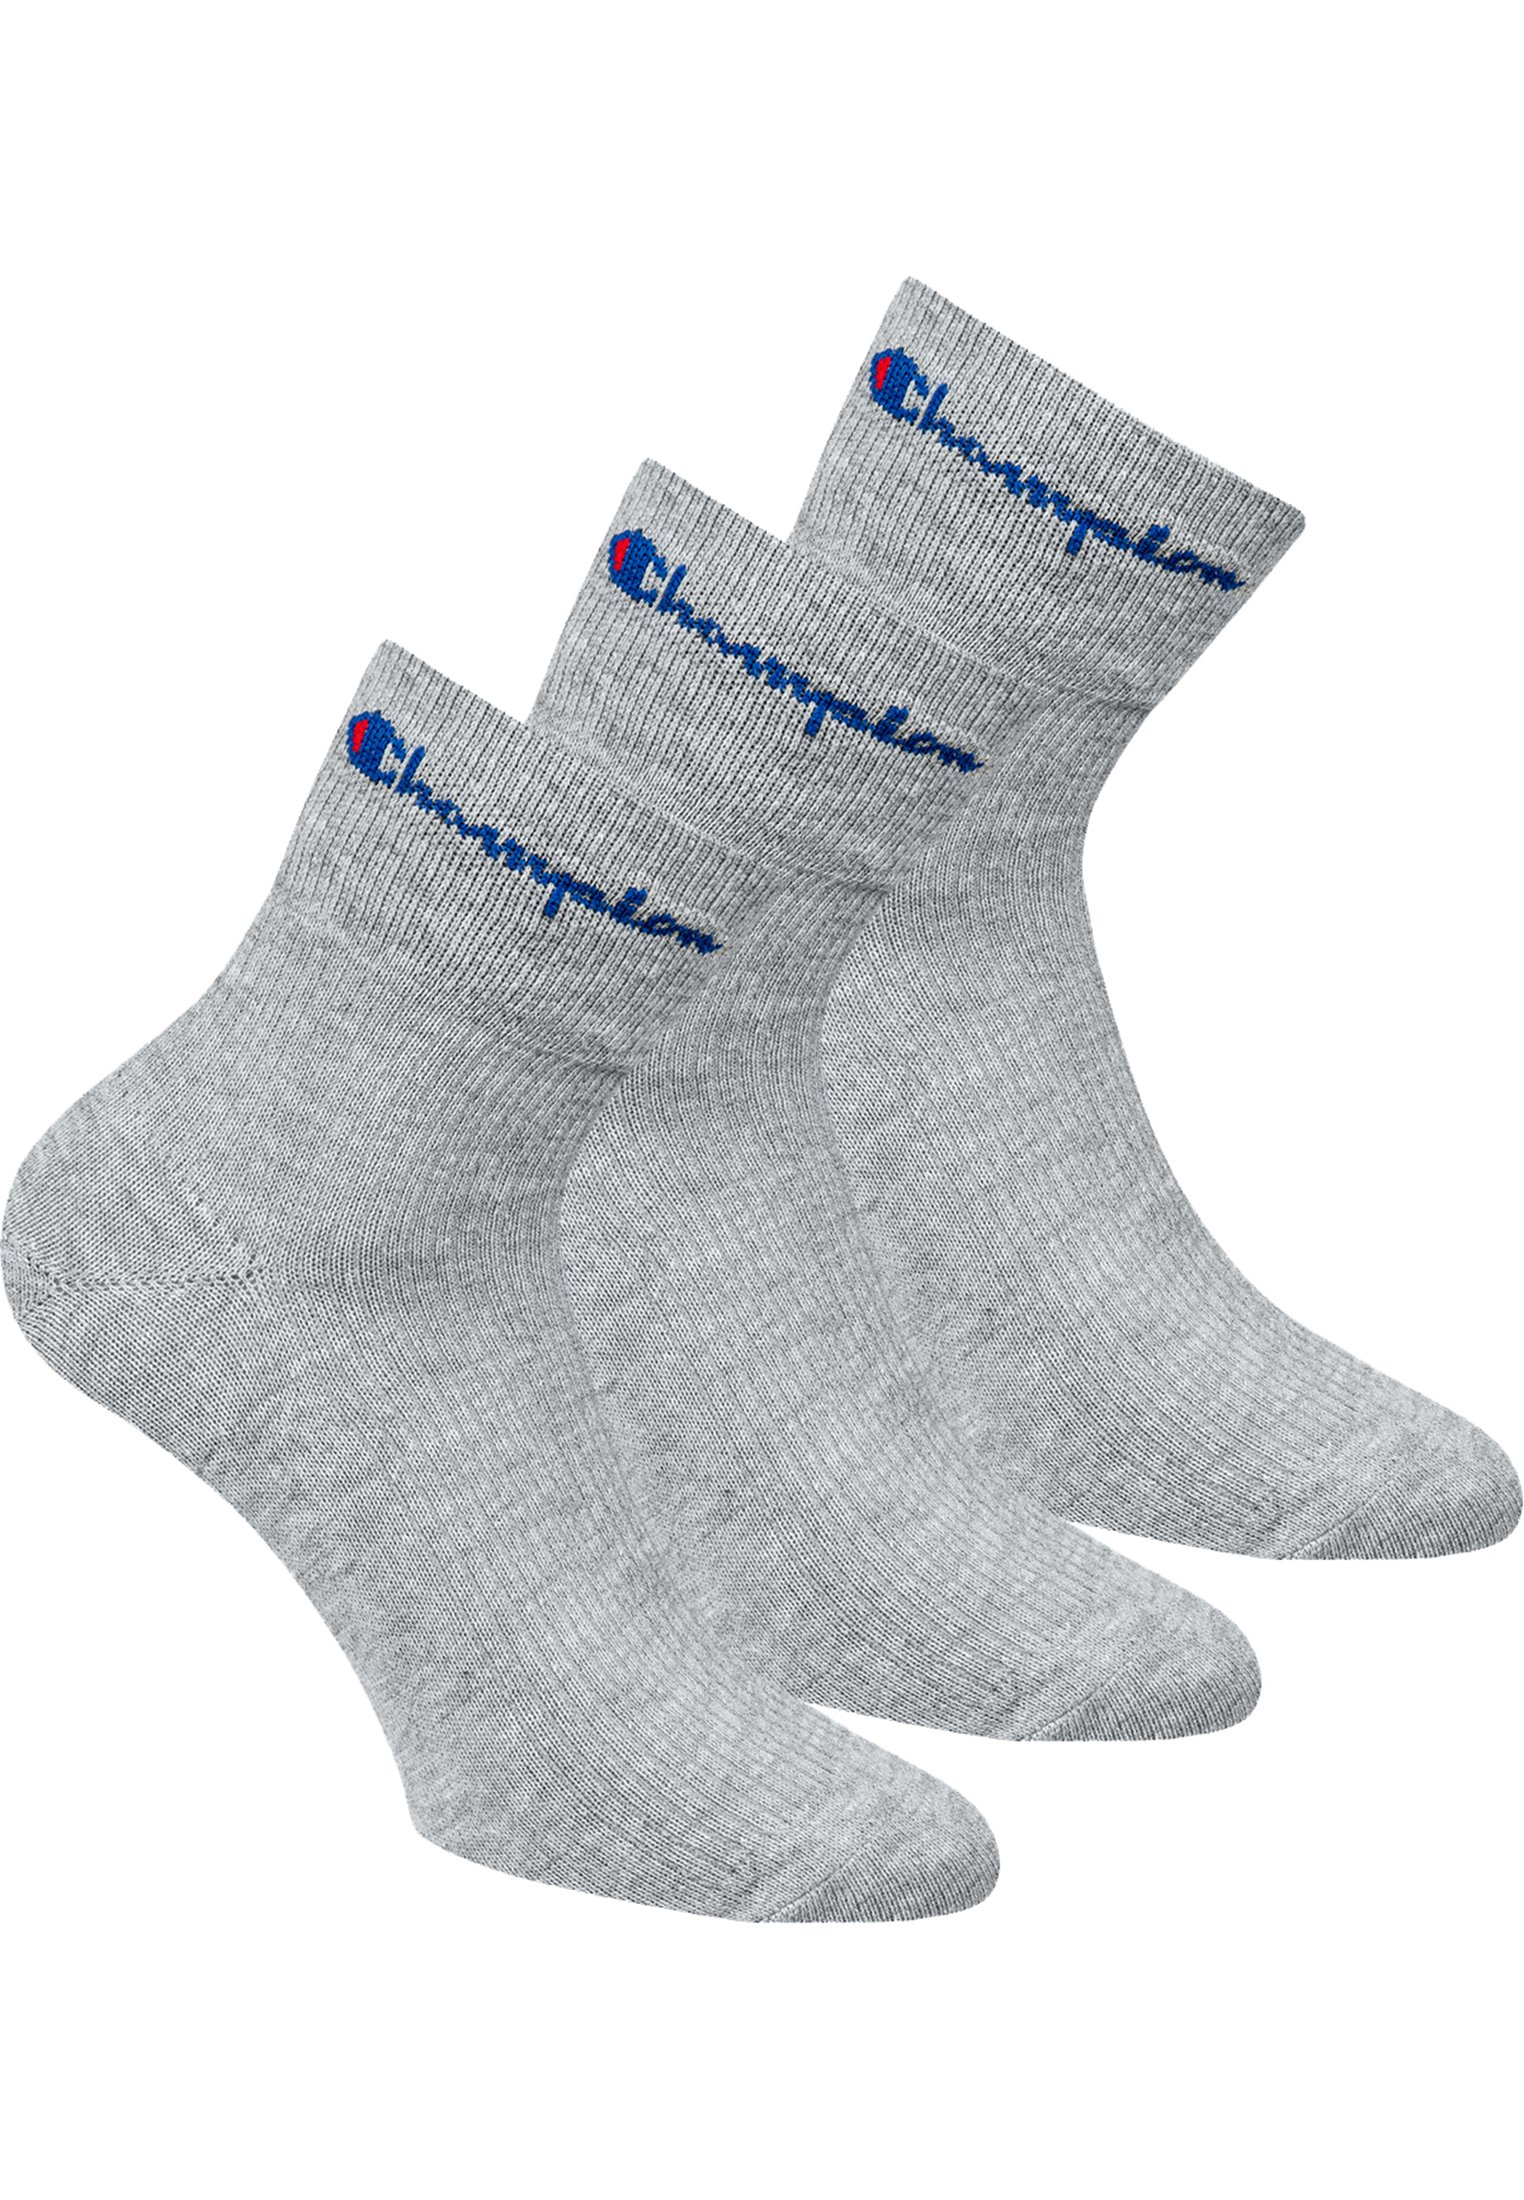 Homme 3 PACK - Chaussettes